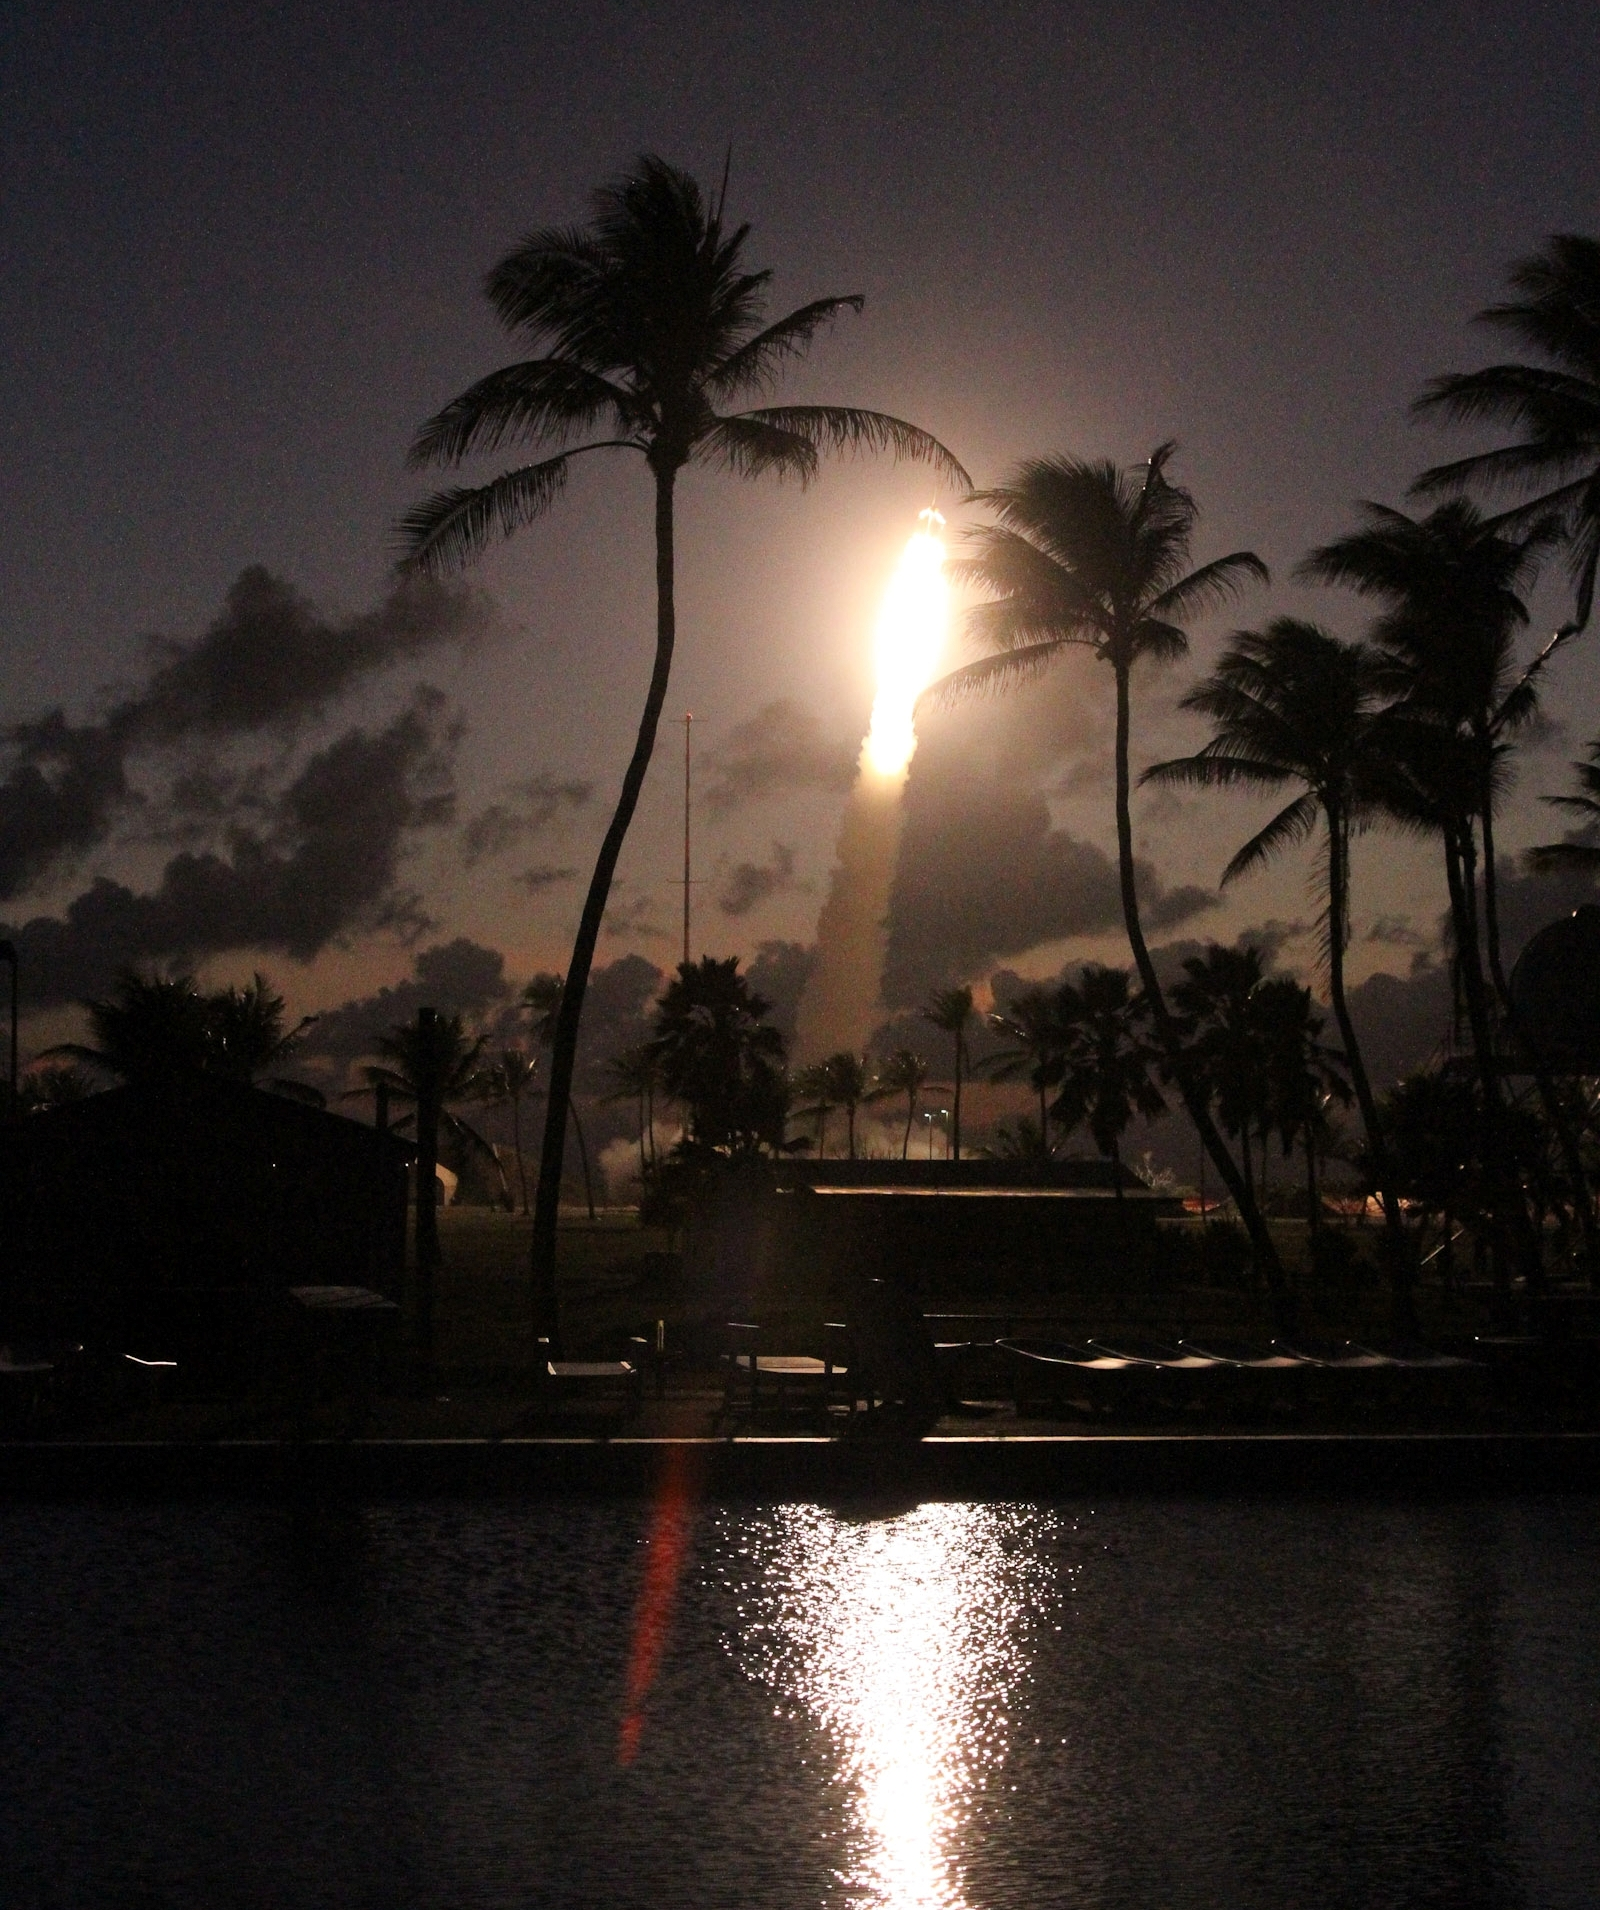 A NASA sounding rocket launches from the Marshall Islands.